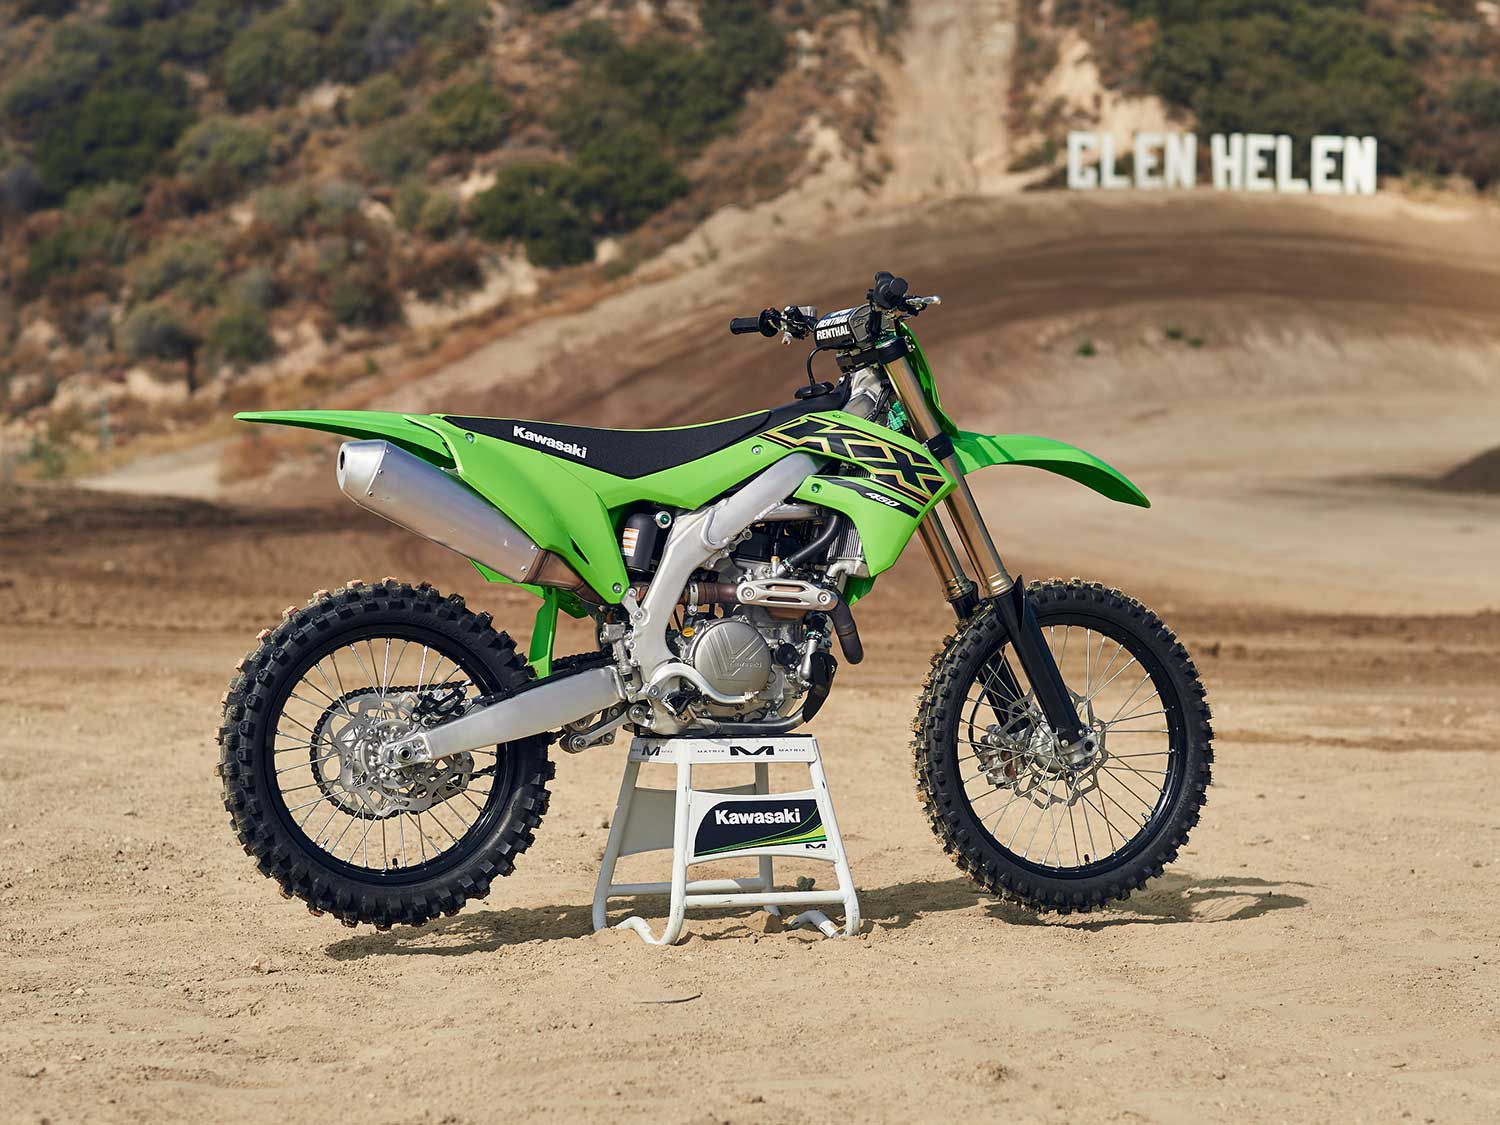 The KX450 receives a few engine updates for 2021 in the form of a new coned disc-spring hydraulic clutch, larger-diameter clutch plates with a revised friction material, and a new dry film lubricant coating on the piston skirt.